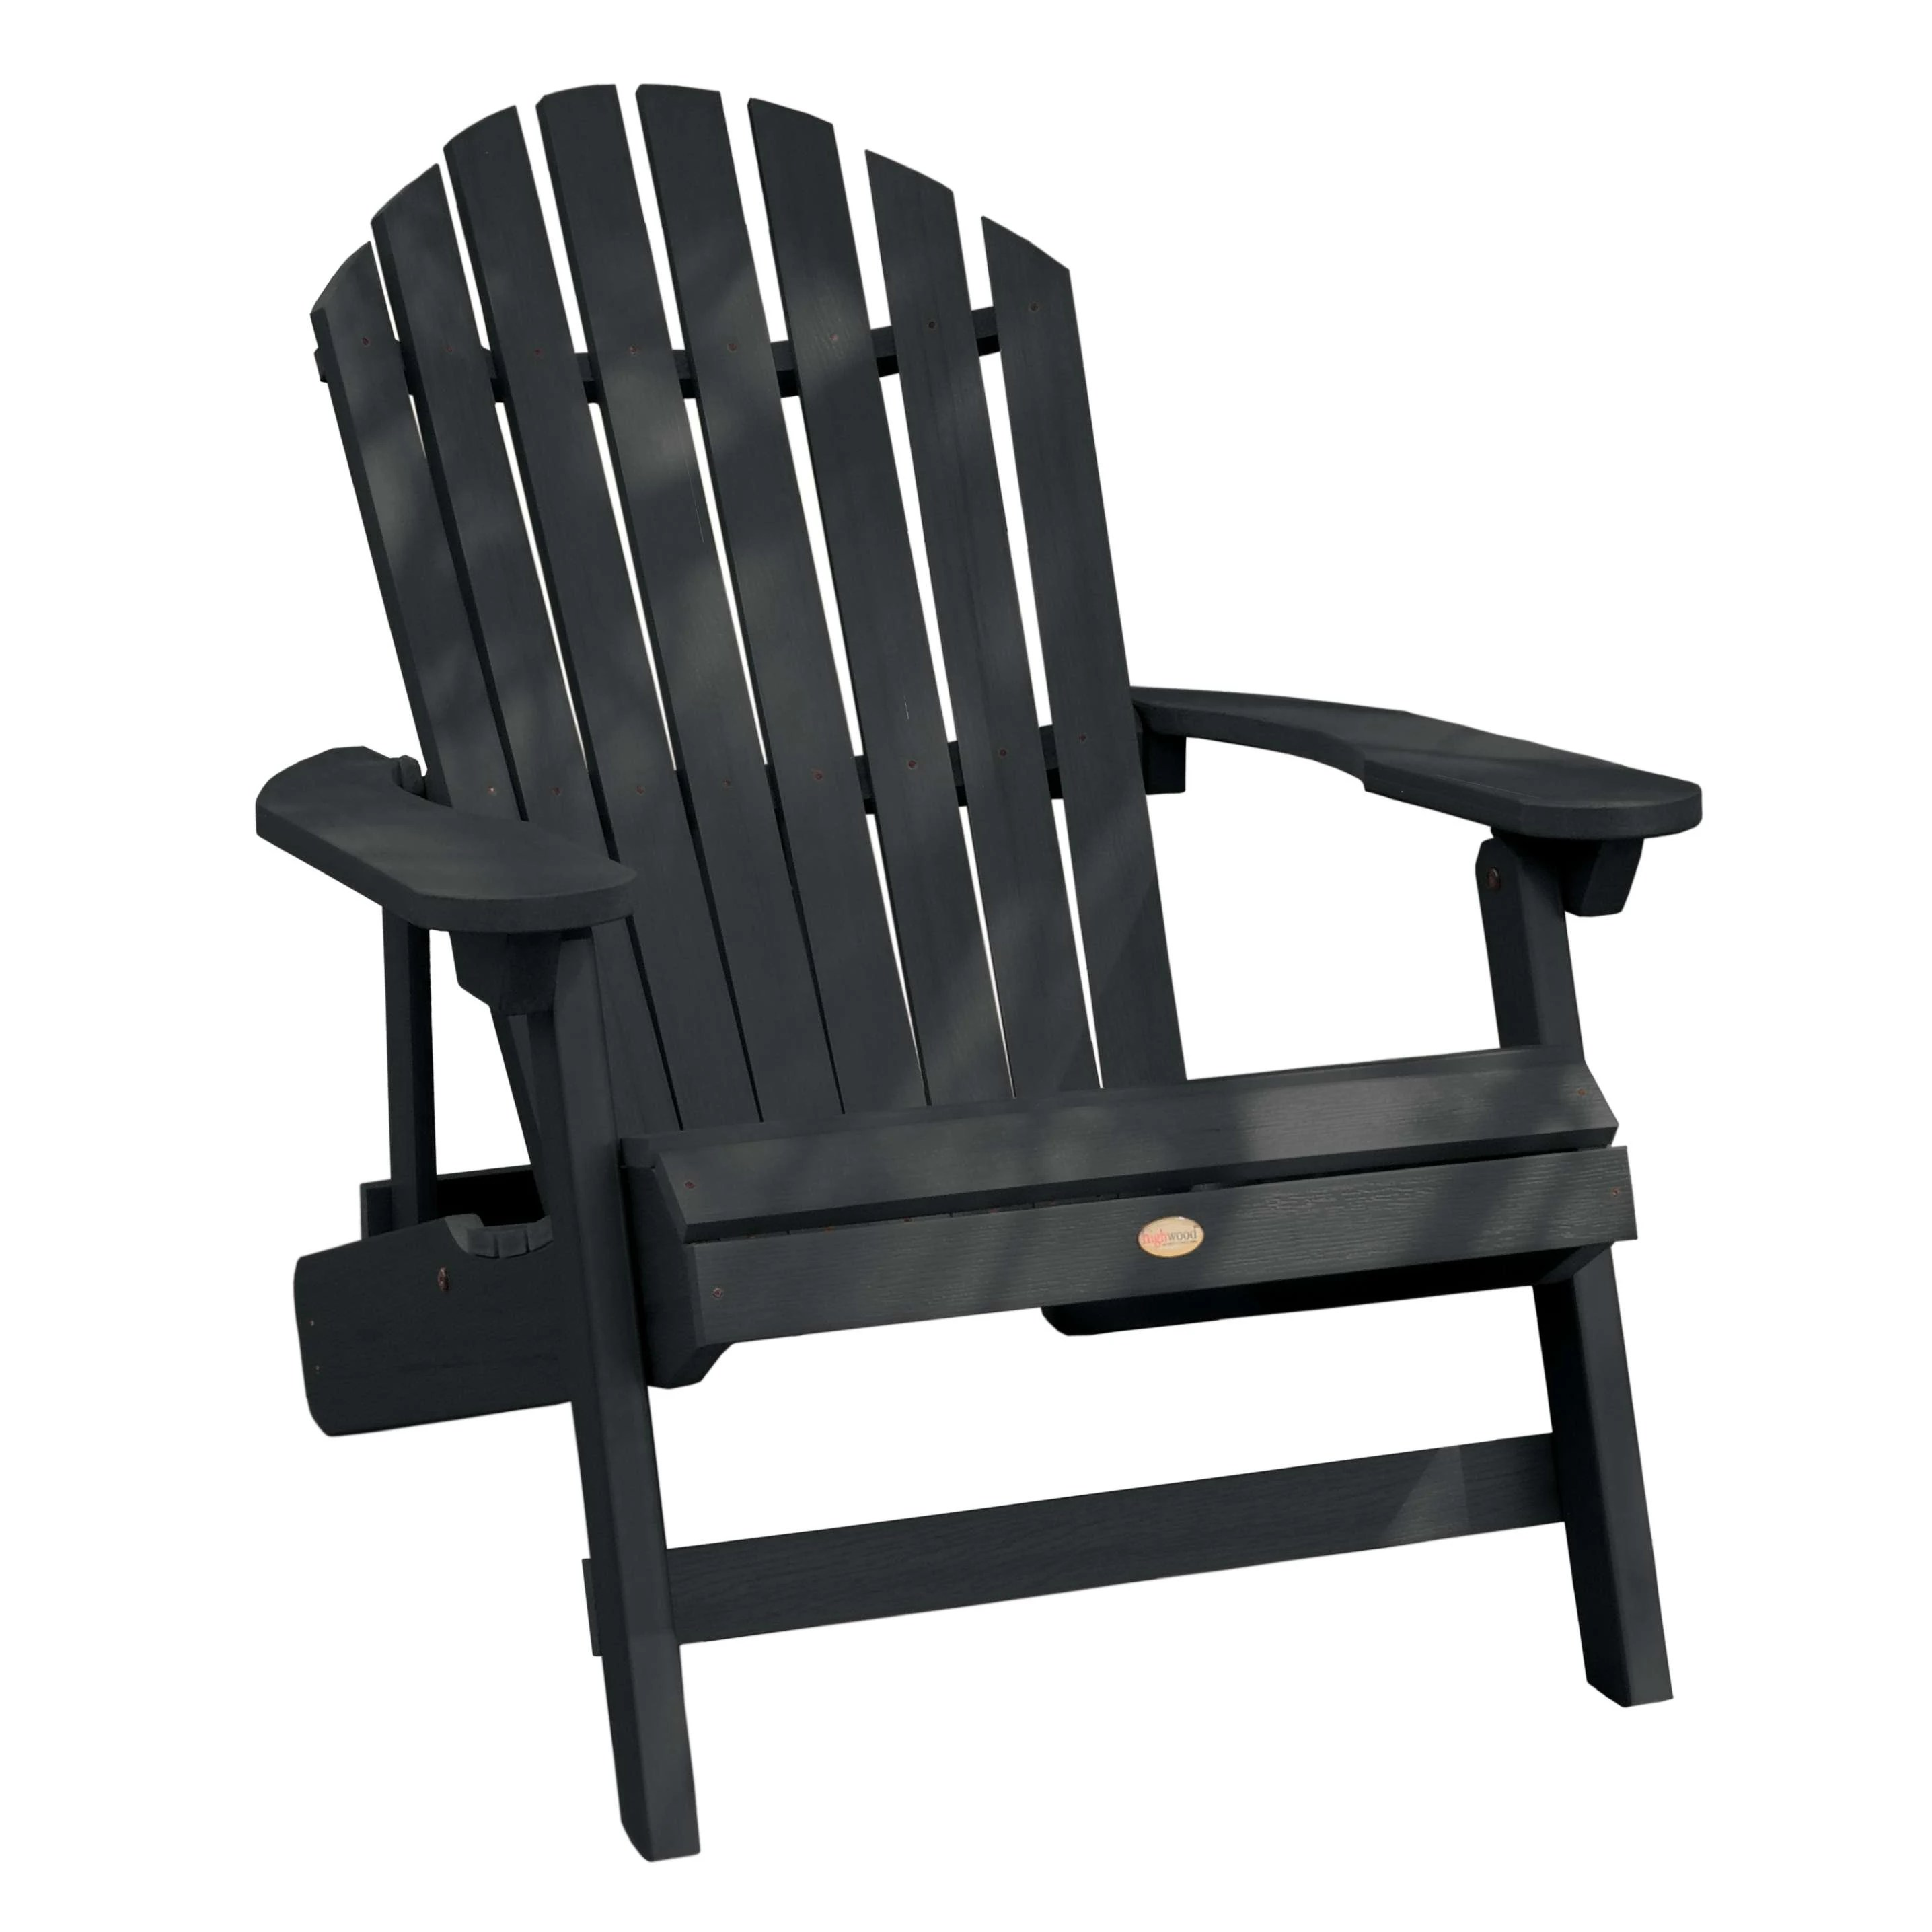 Adirondack Chair Reviews Highwood Ad King1 Bke